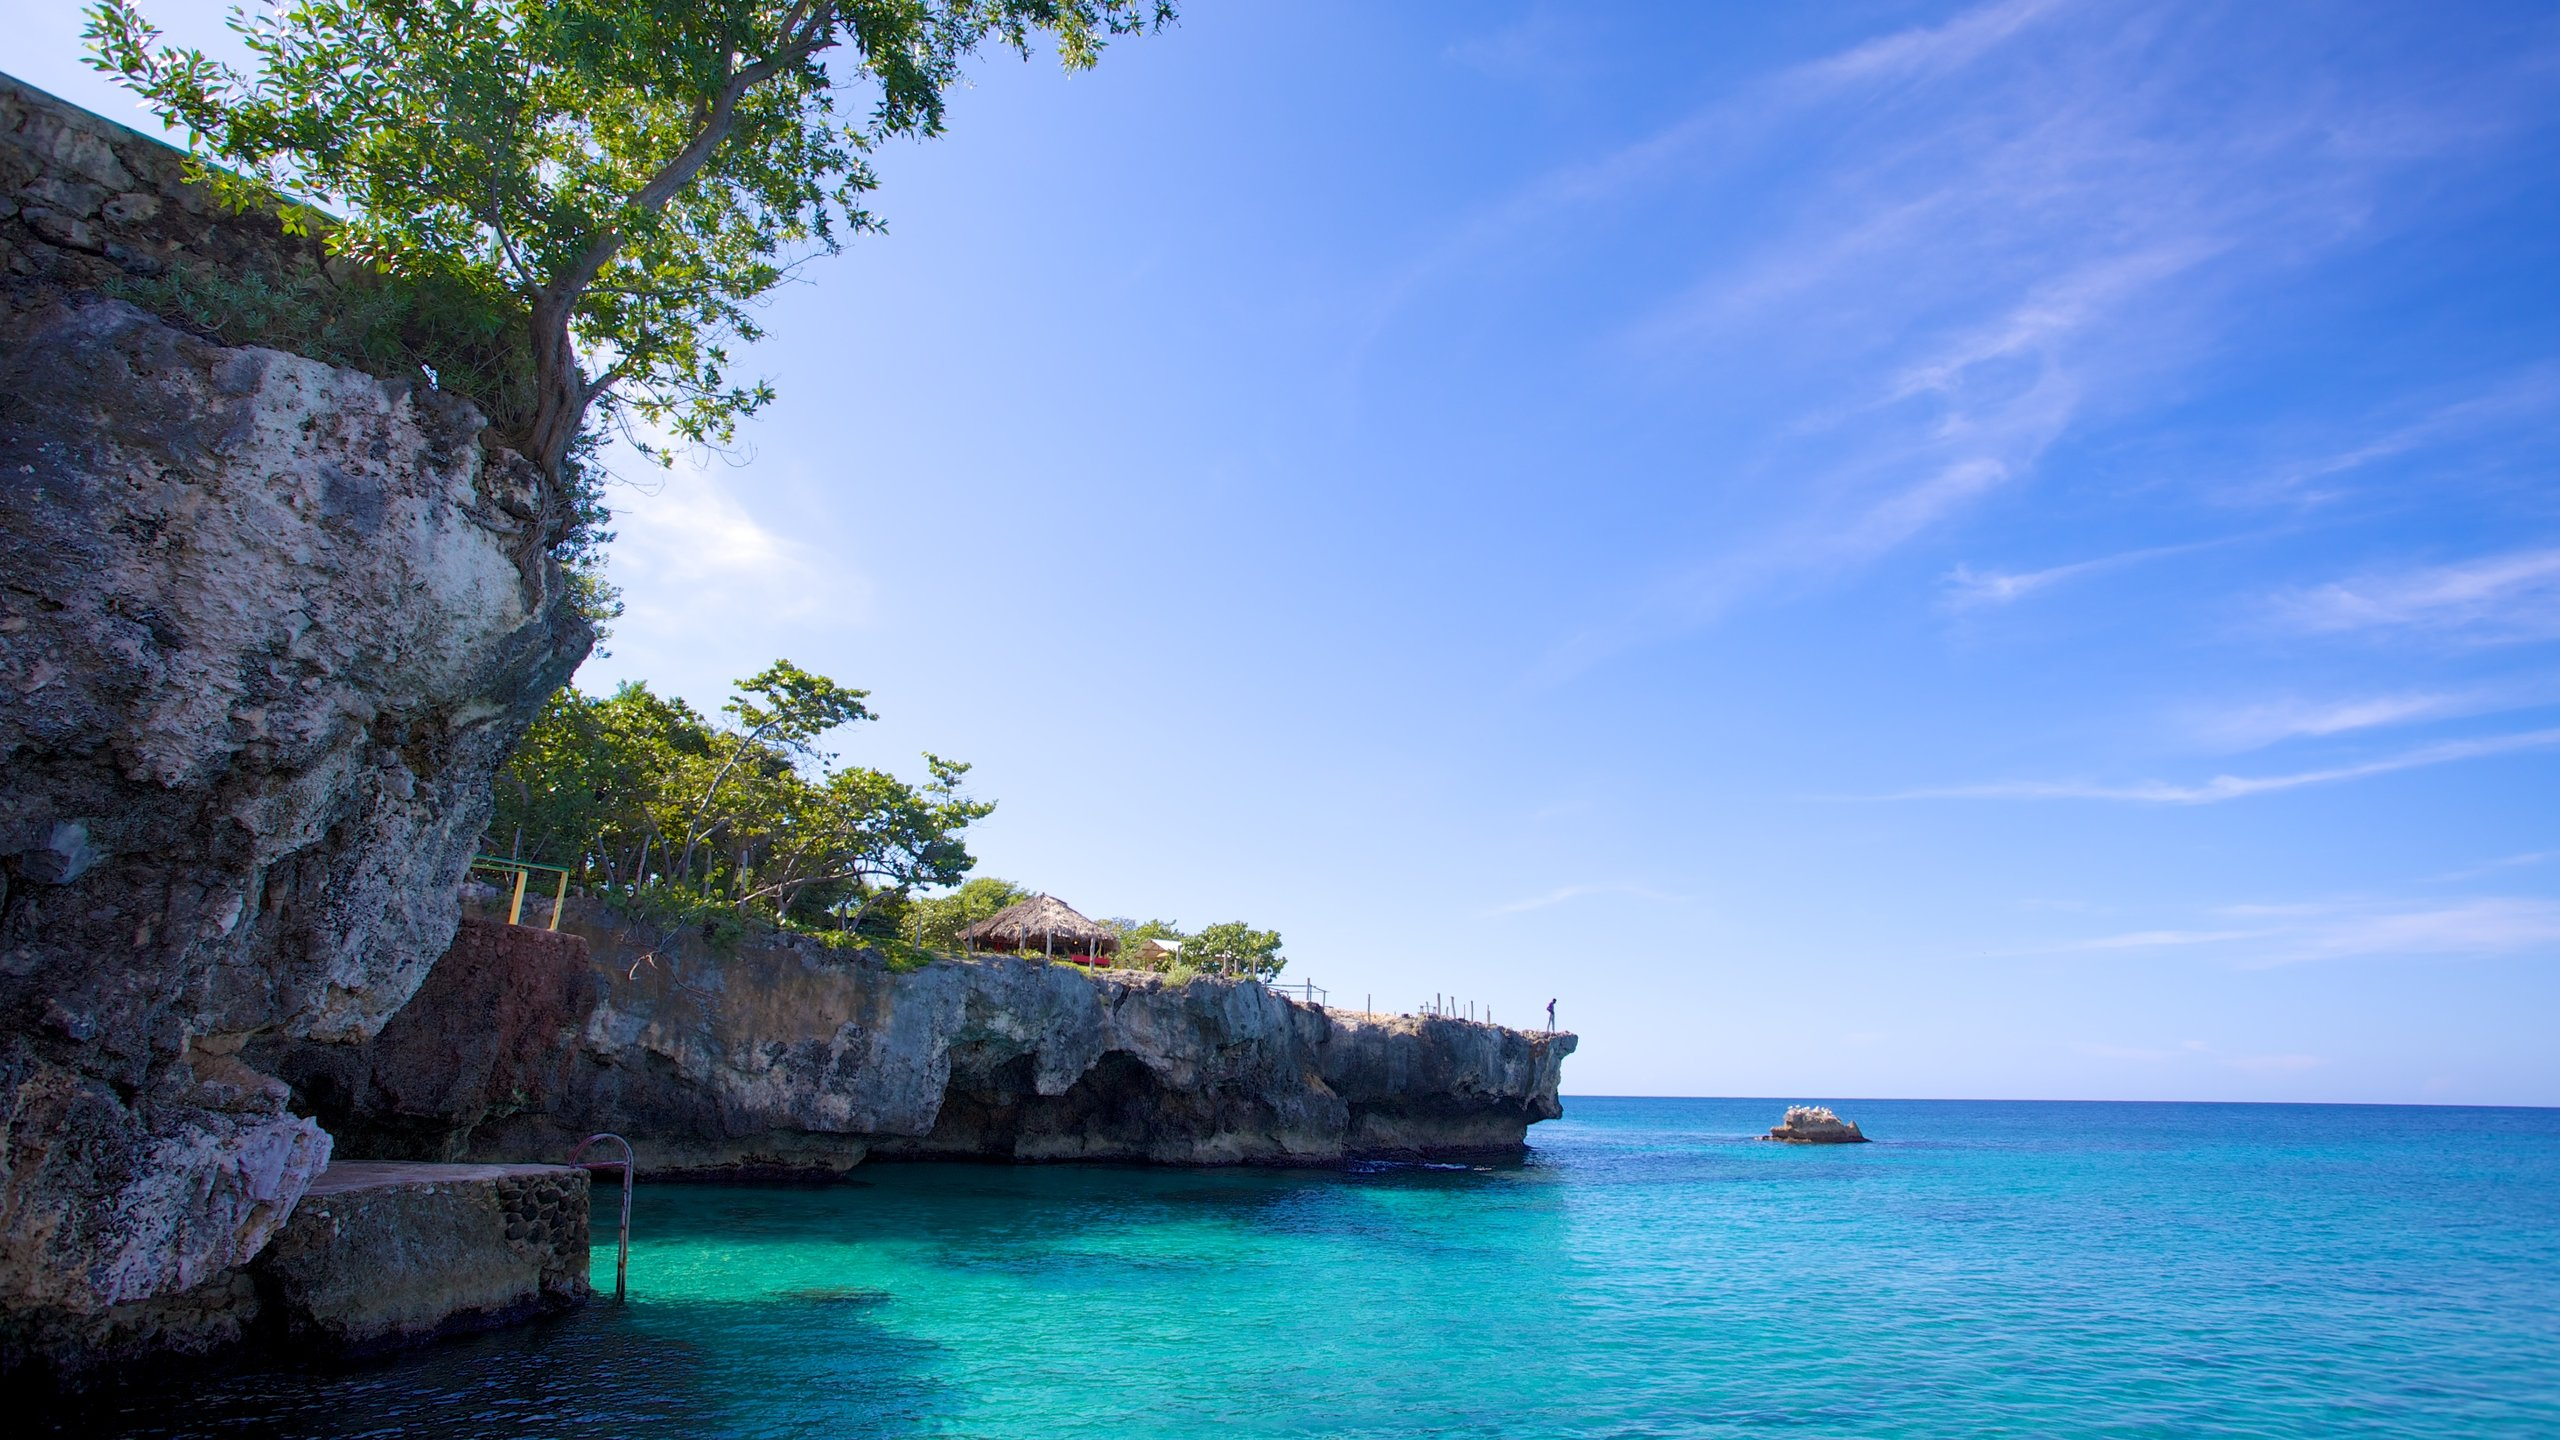 Negril All inclusive Resorts  Hotels for Vacations in